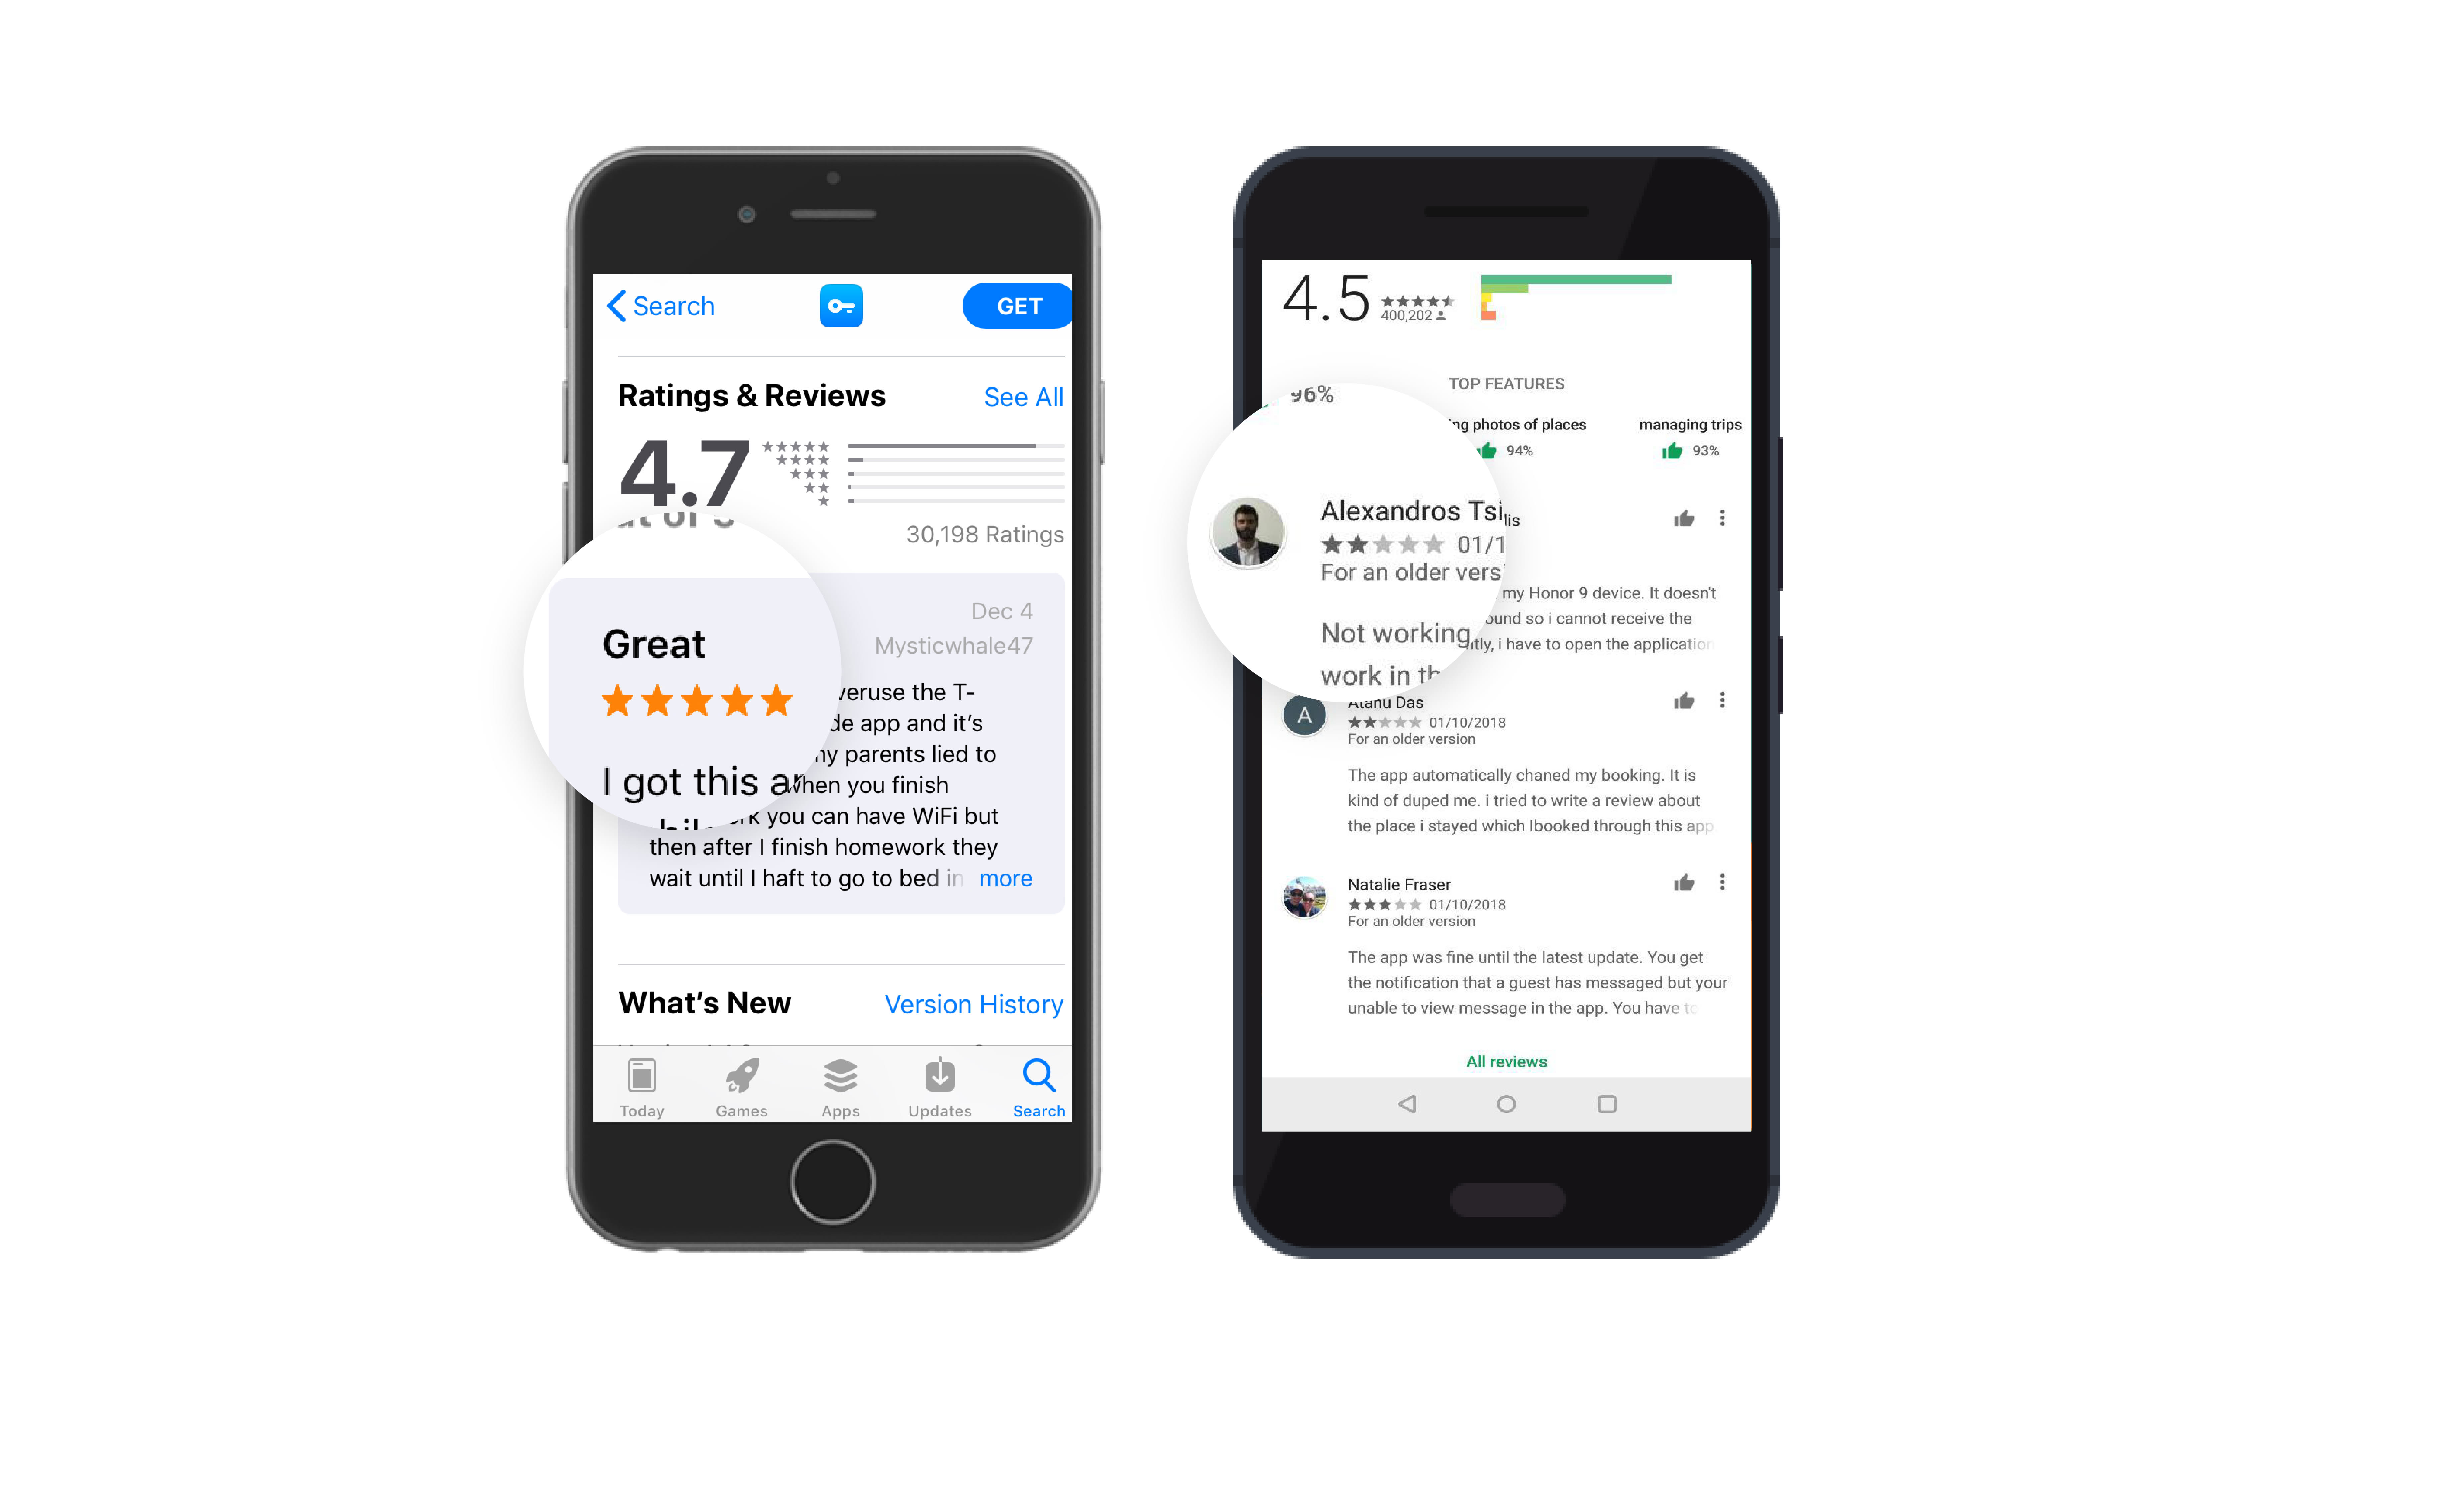 Featured reviews on the App Store and on Google Play.